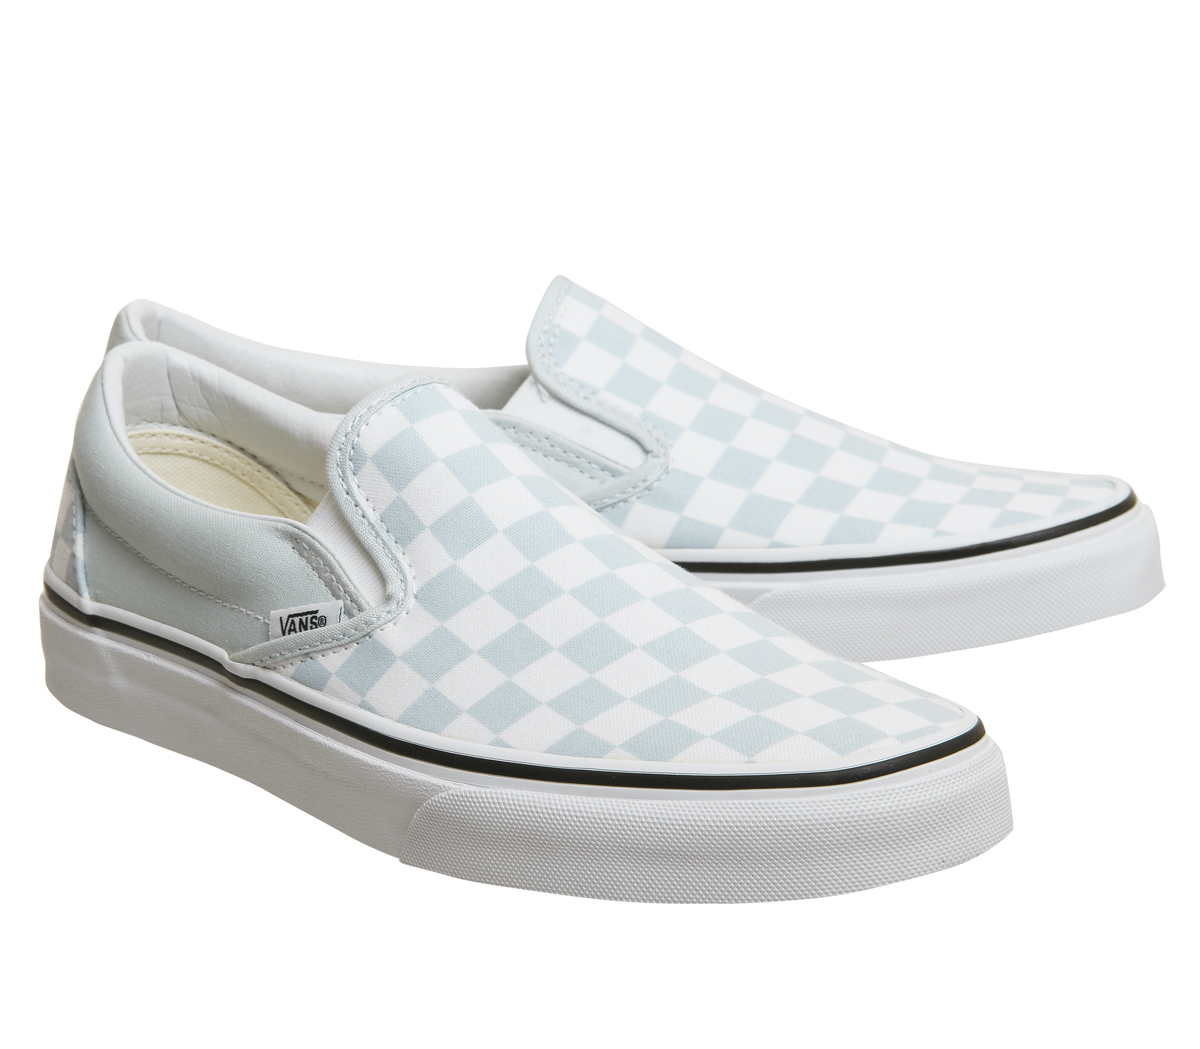 vans classic slip on trainers in checkerboard